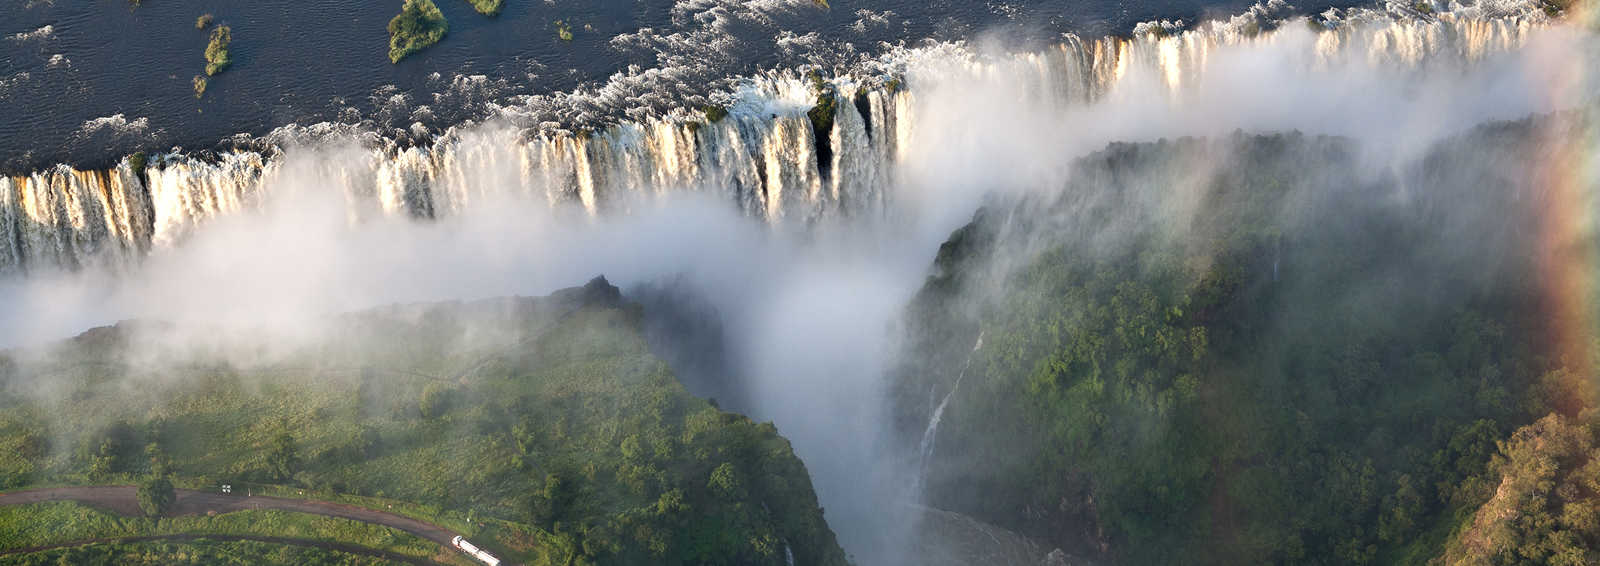 View of Victoria falls from a helicopter